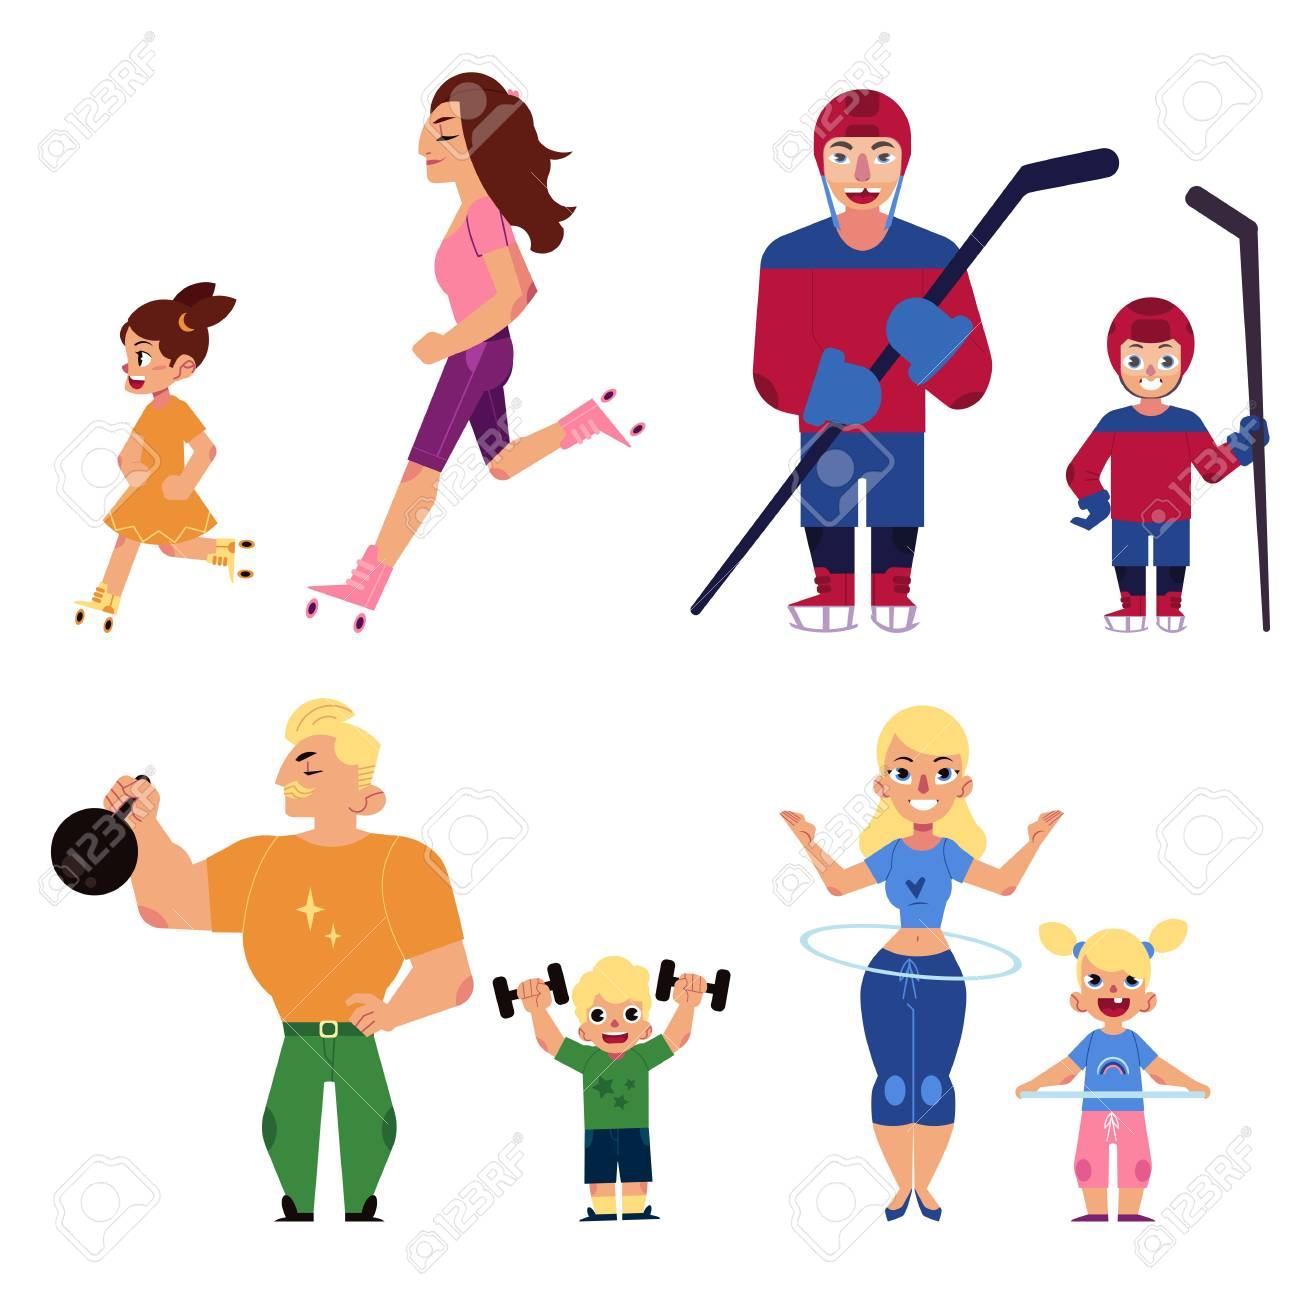 Sport family set with parents and children engaged in same sports...